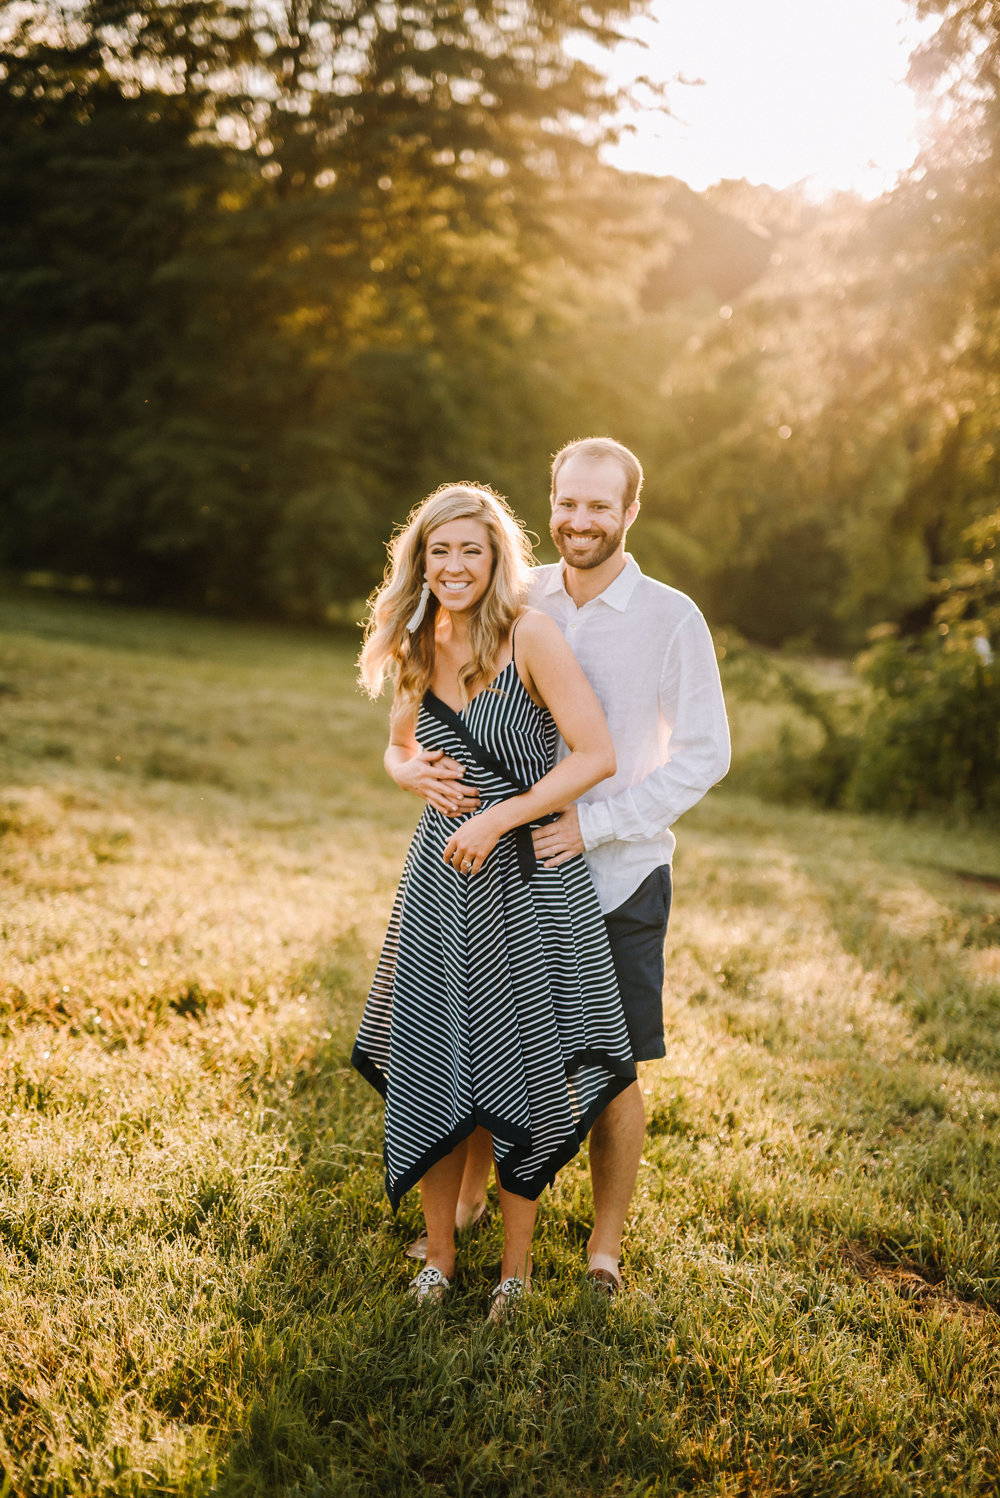 Meredith & Michael_Broad Ave_Shelby Farms_Ashley Benham Photography-102.jpg